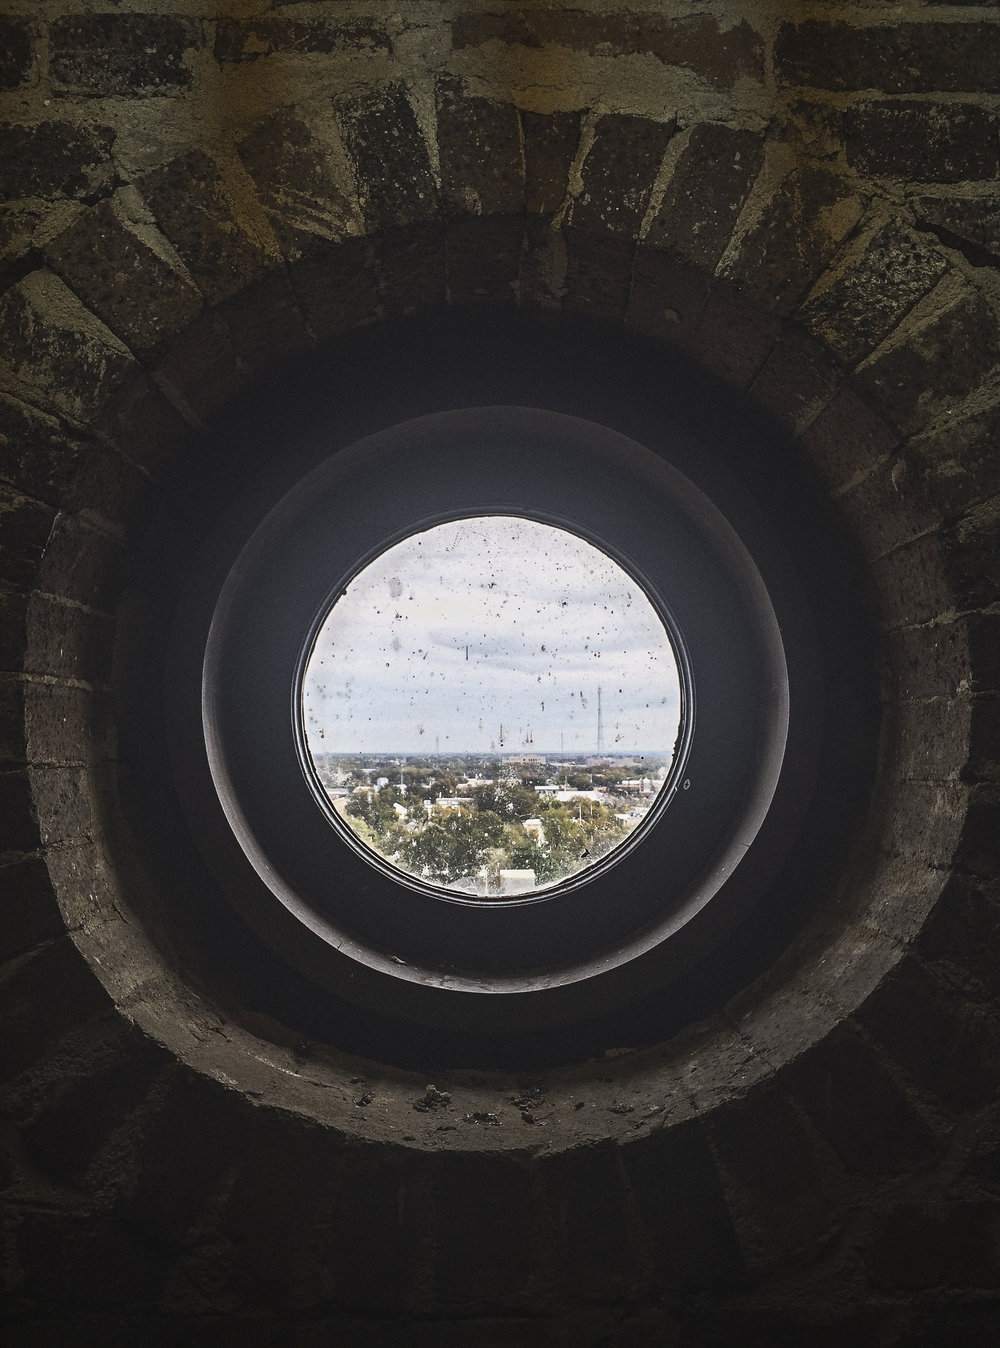 Looking at downtown Denton from a small circular window deep within the bowels of the courthouse. Photo by Will Milne.